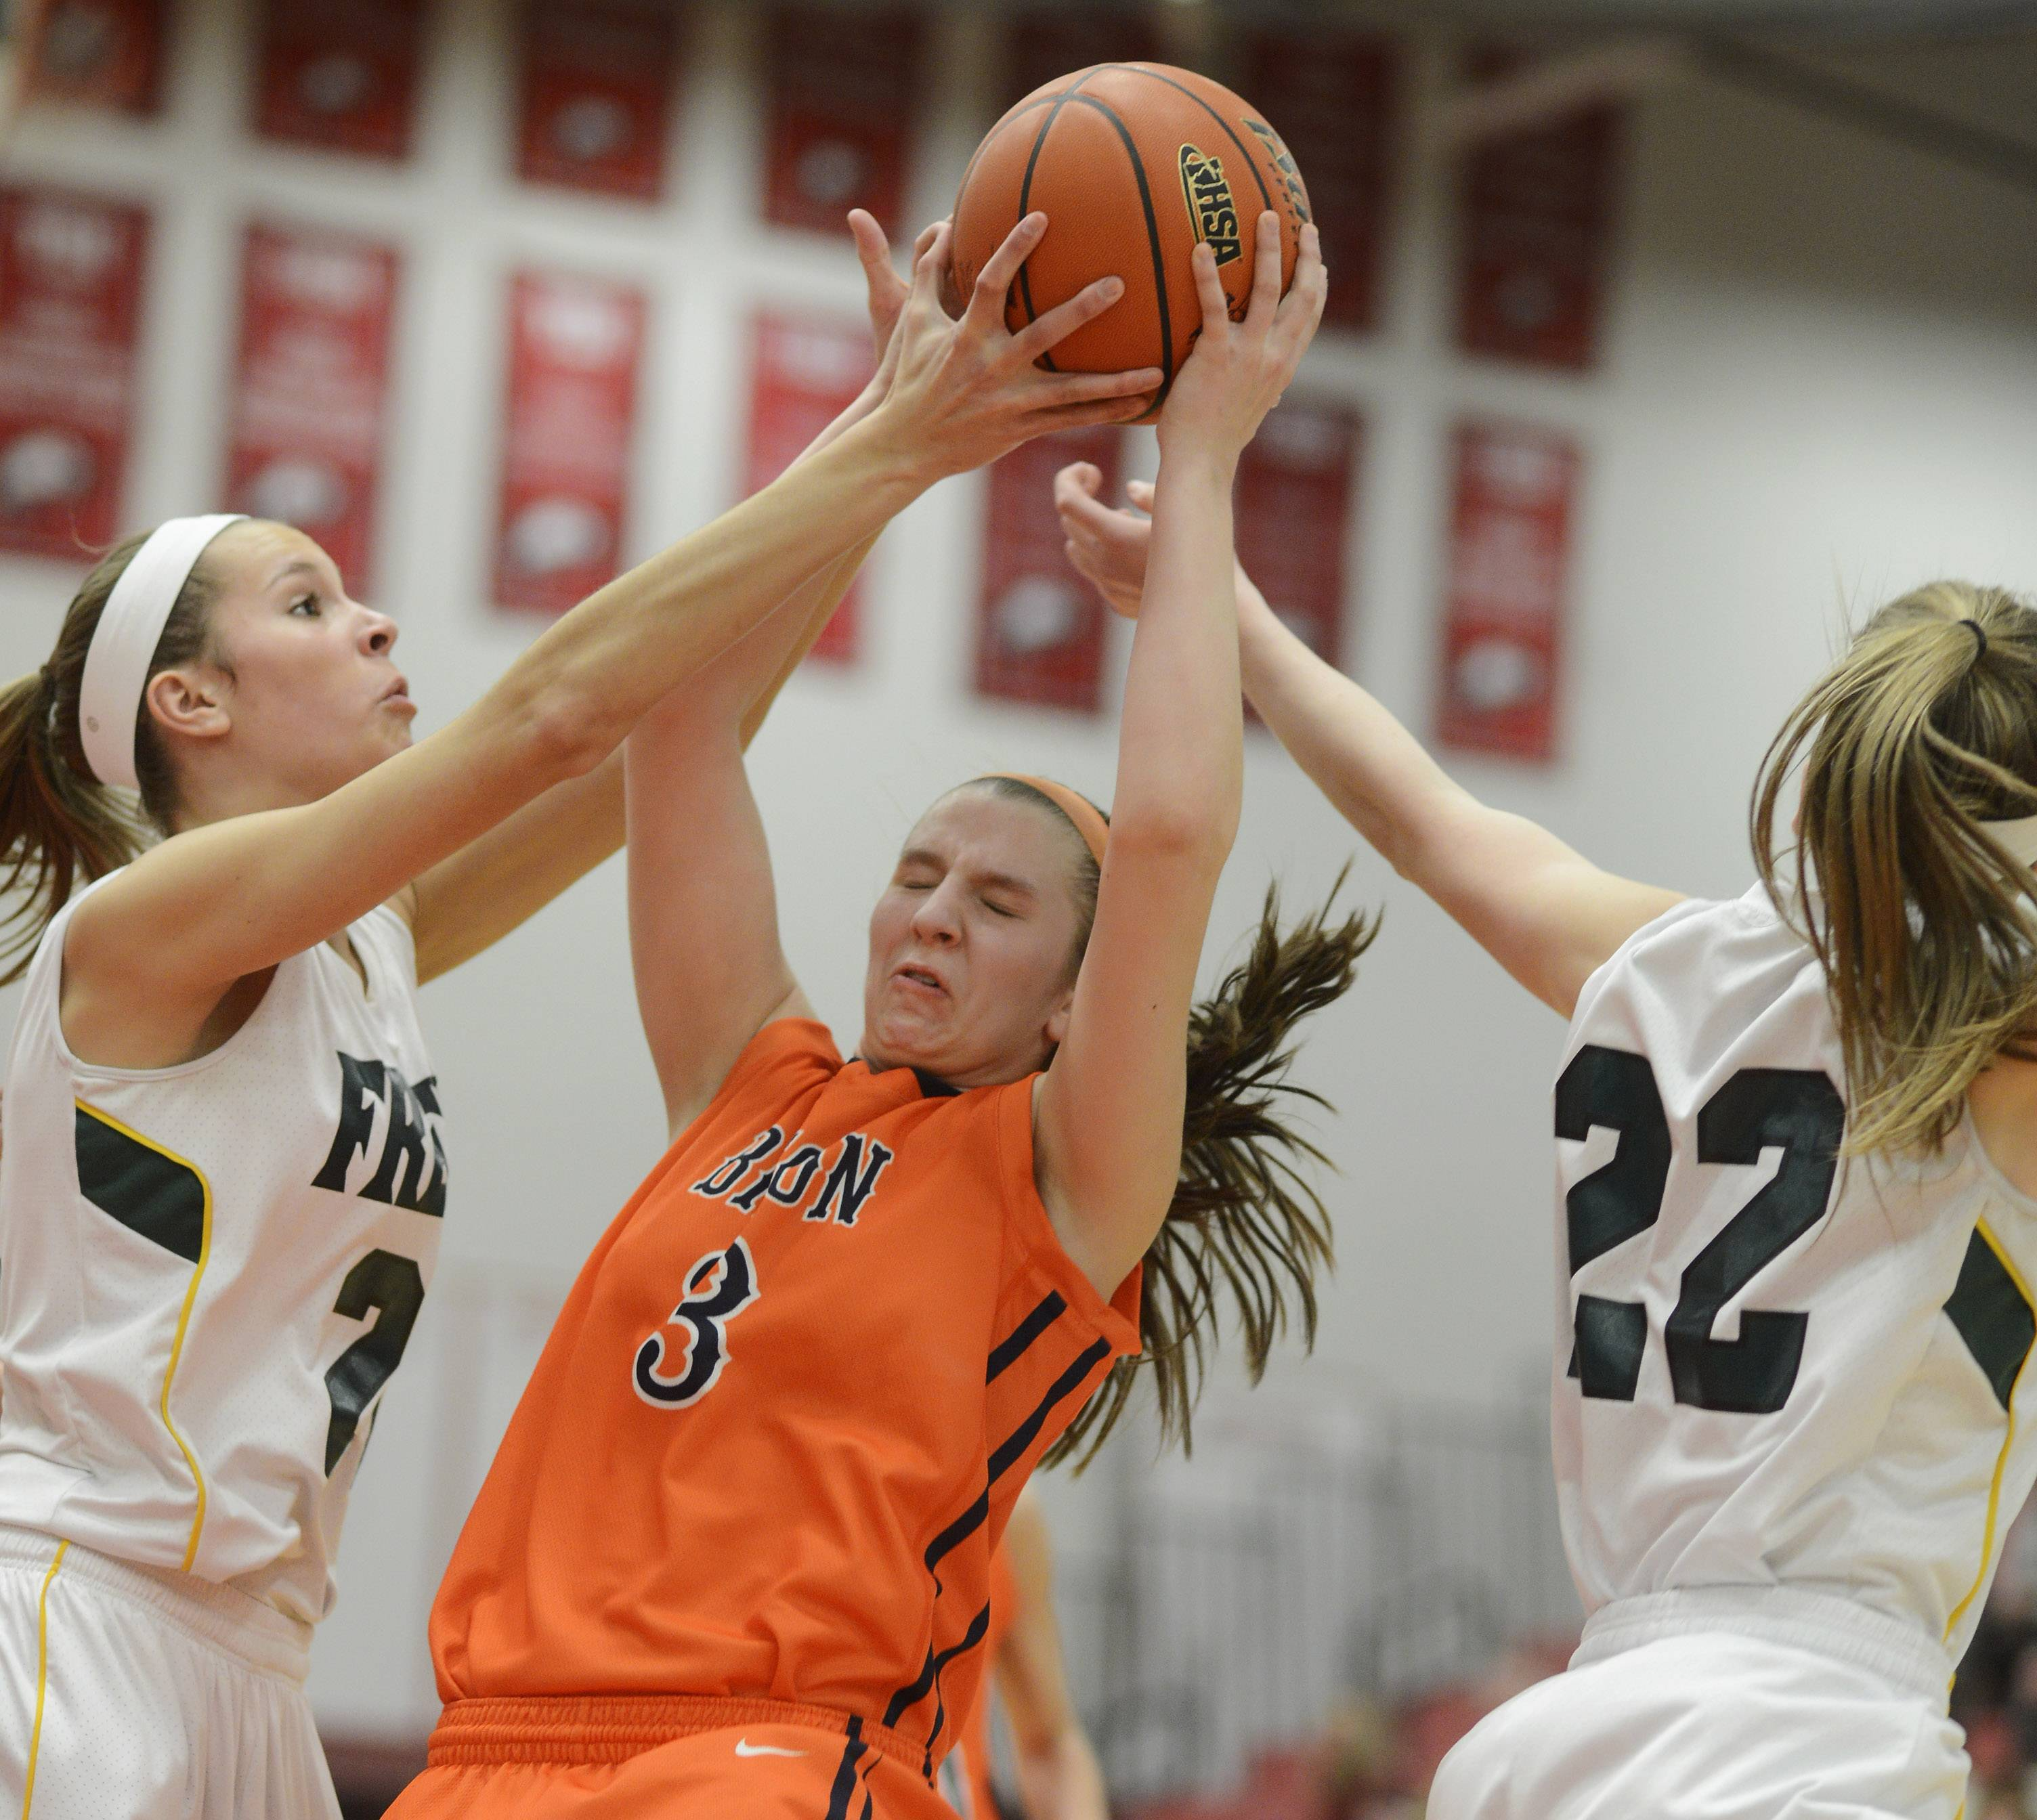 Buffalo Grove's Maddie Welter, middle, gets between Fremd's Grace Twrek, left, and Erin Lenahan for a rebound during the Class 4A sectional semifinal at Barrington on Tuesday.